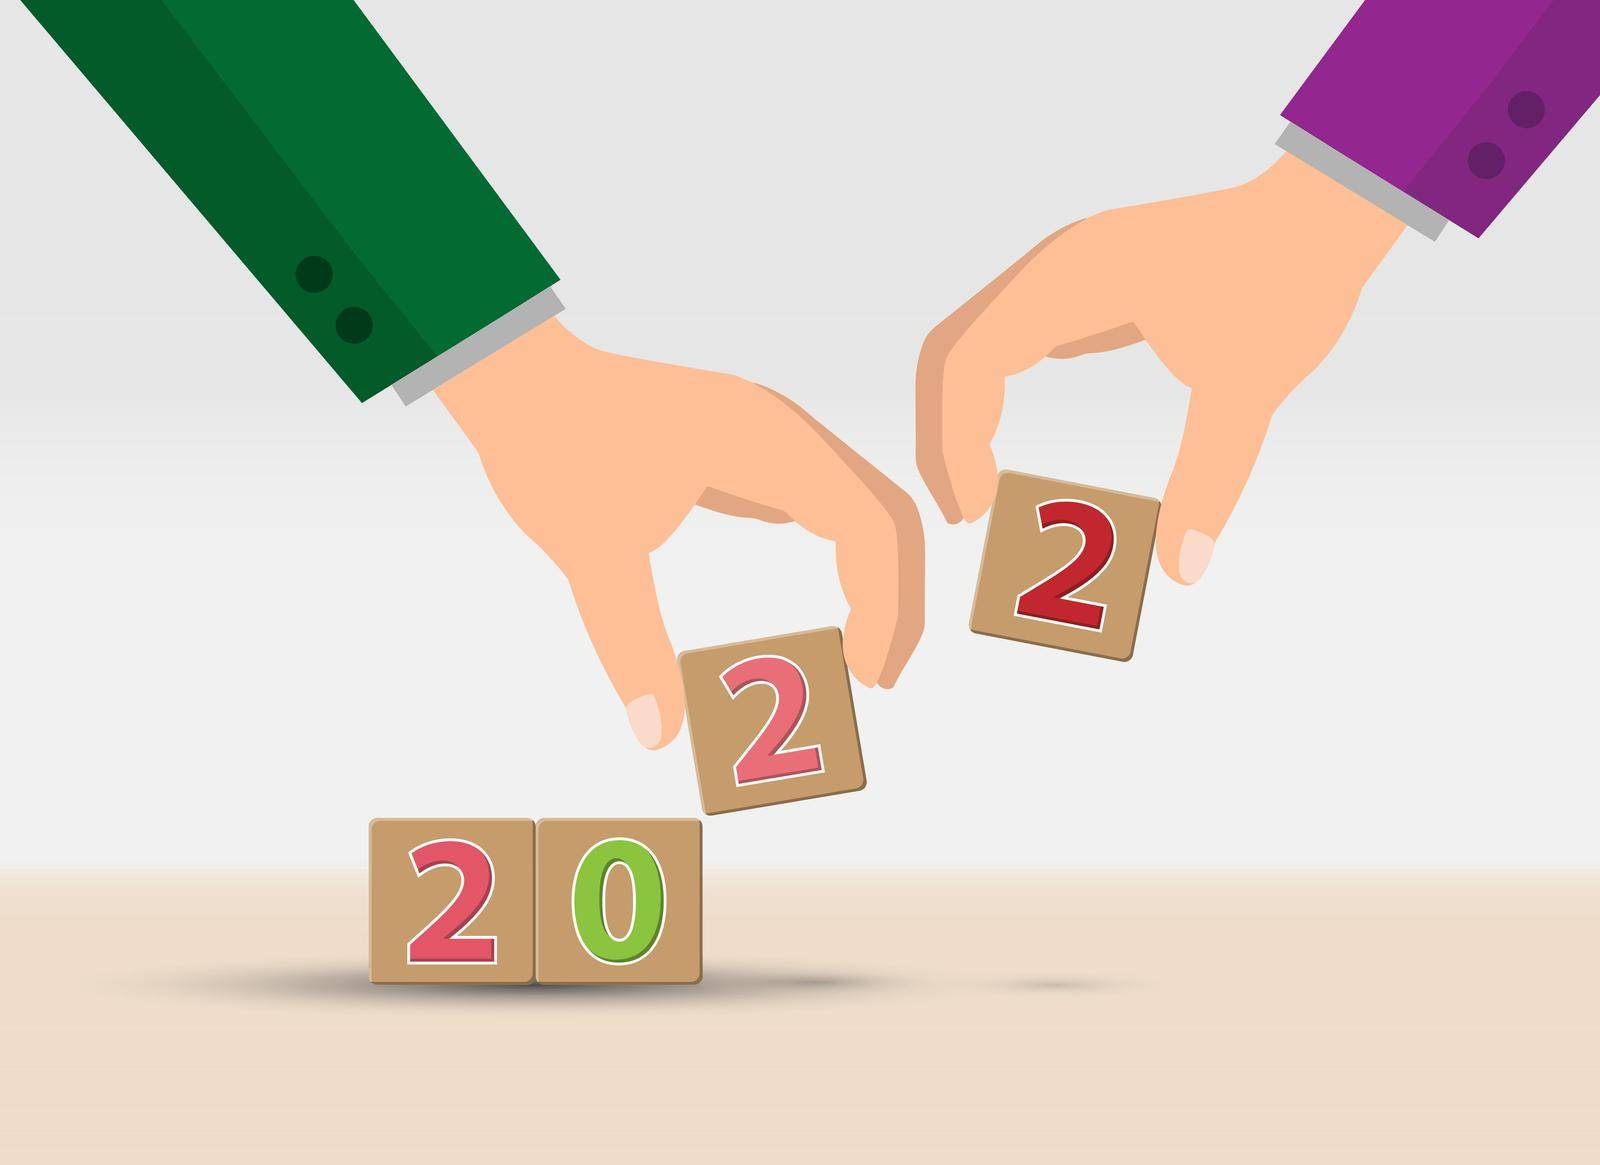 2022. The new year is 2022. The hand adds up the cubes with the new year 2022. Merry Christmas and Happy New Year by Grommik